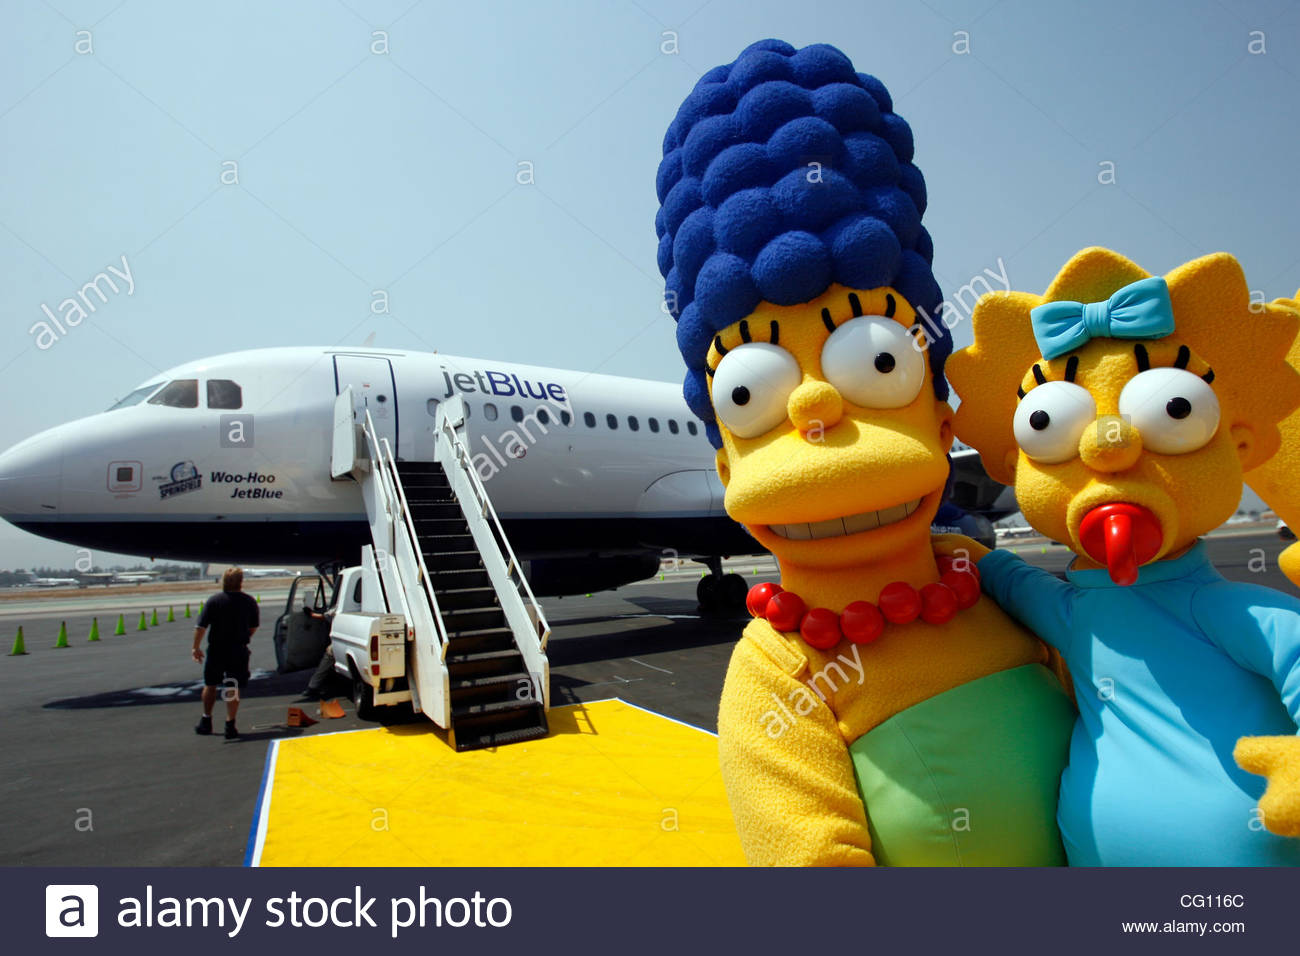 Characters From The Simpsons Movie Marge And Maggie Pose For Stock Photo Alamy